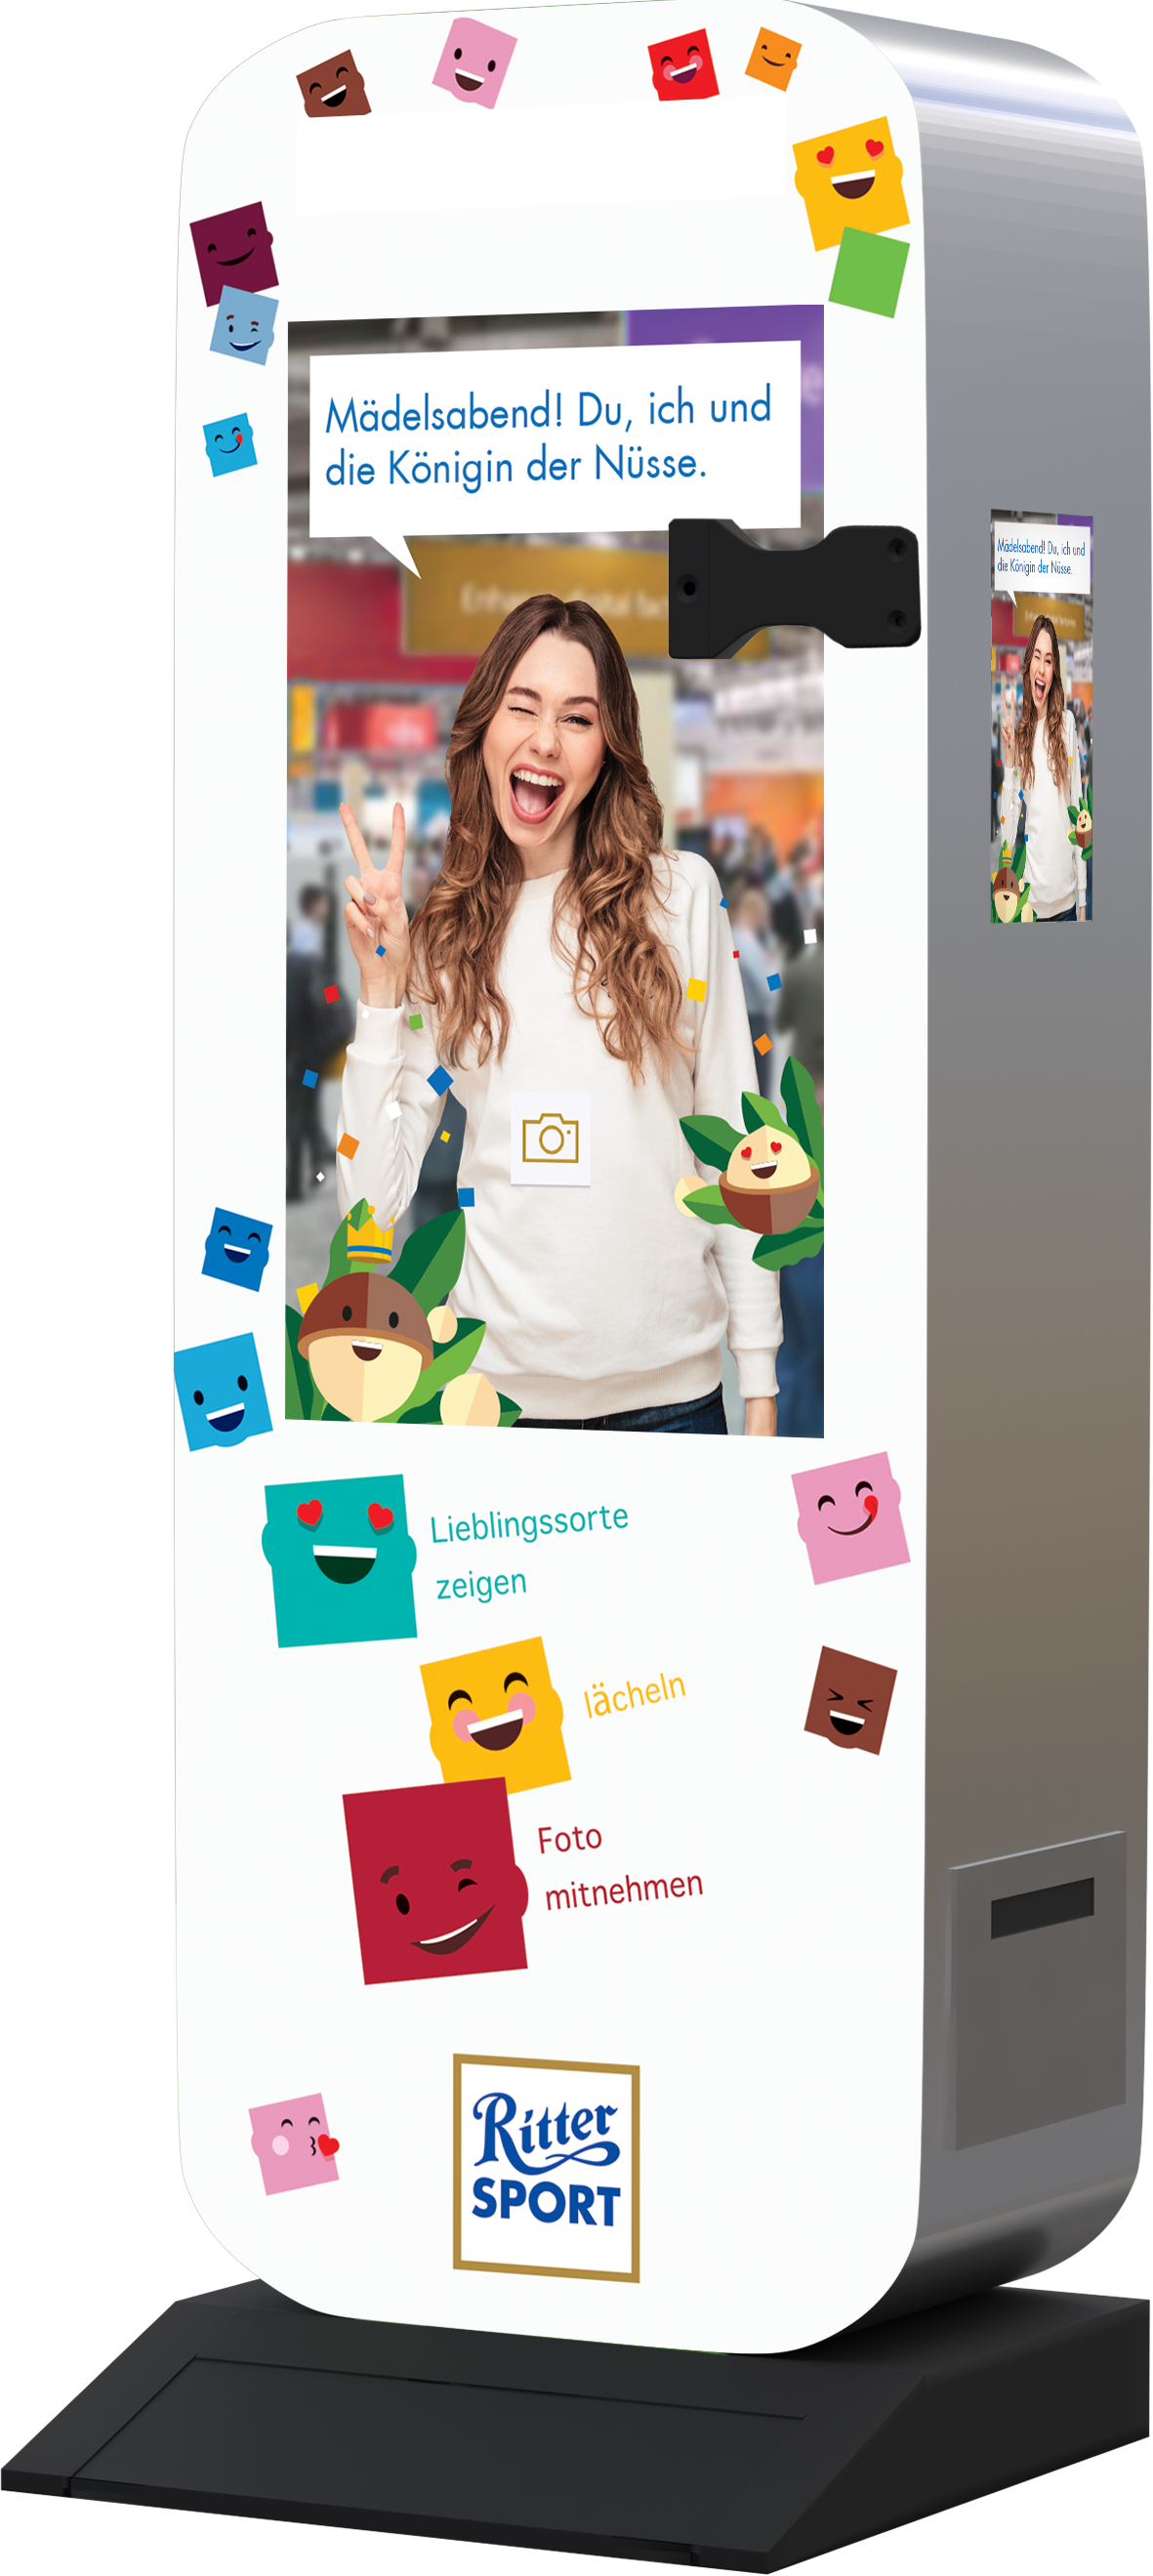 Photobox for an interactive AR campaign for Ritter Sport at the point of sale.